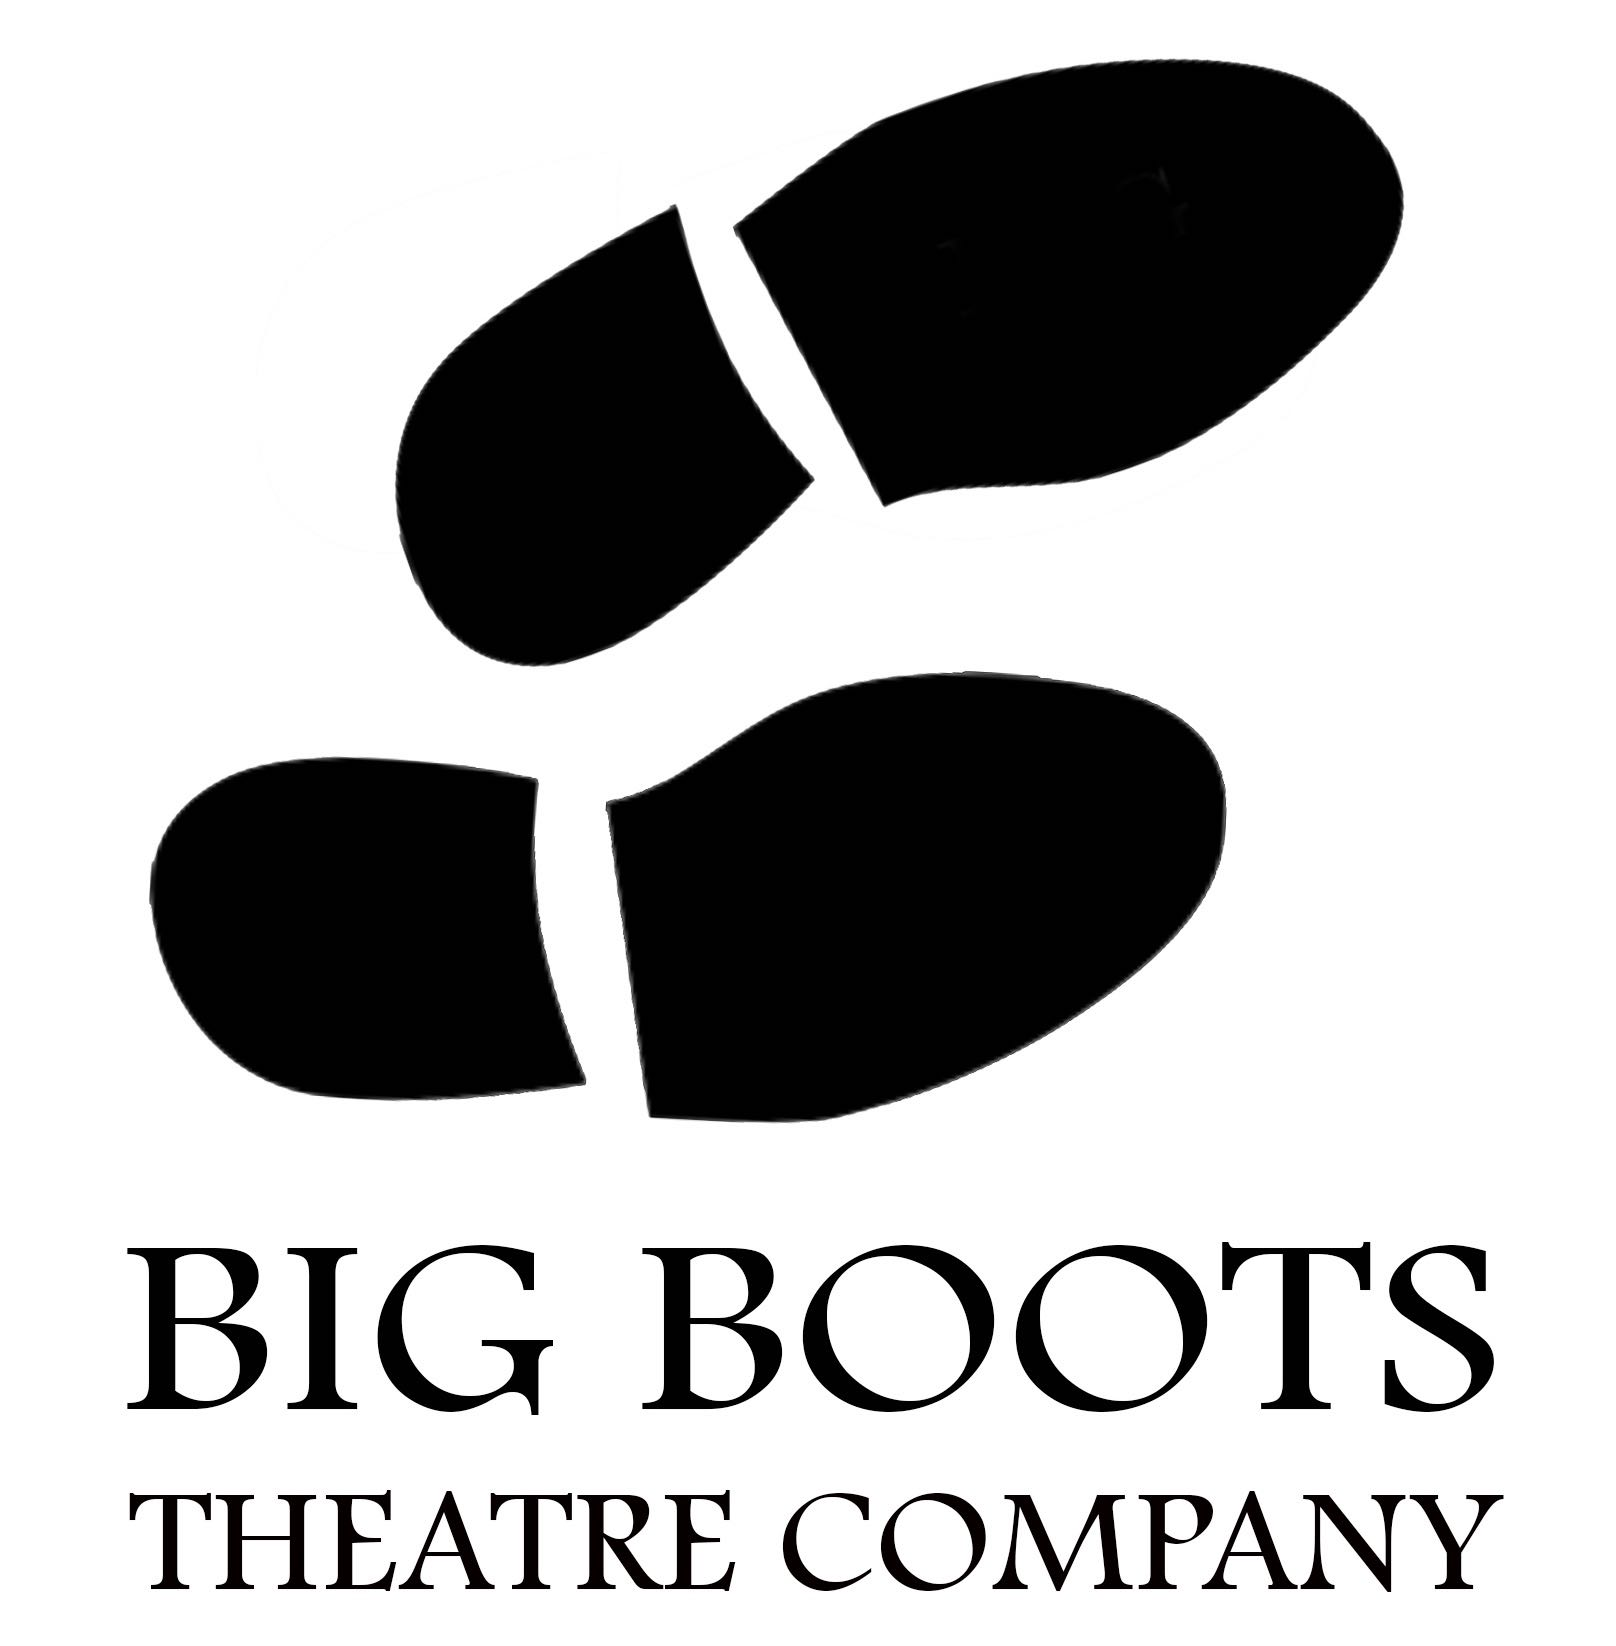 THEATRE - Male UK based Latino Actors (including Brazilian) for new production (apply by 20th July)